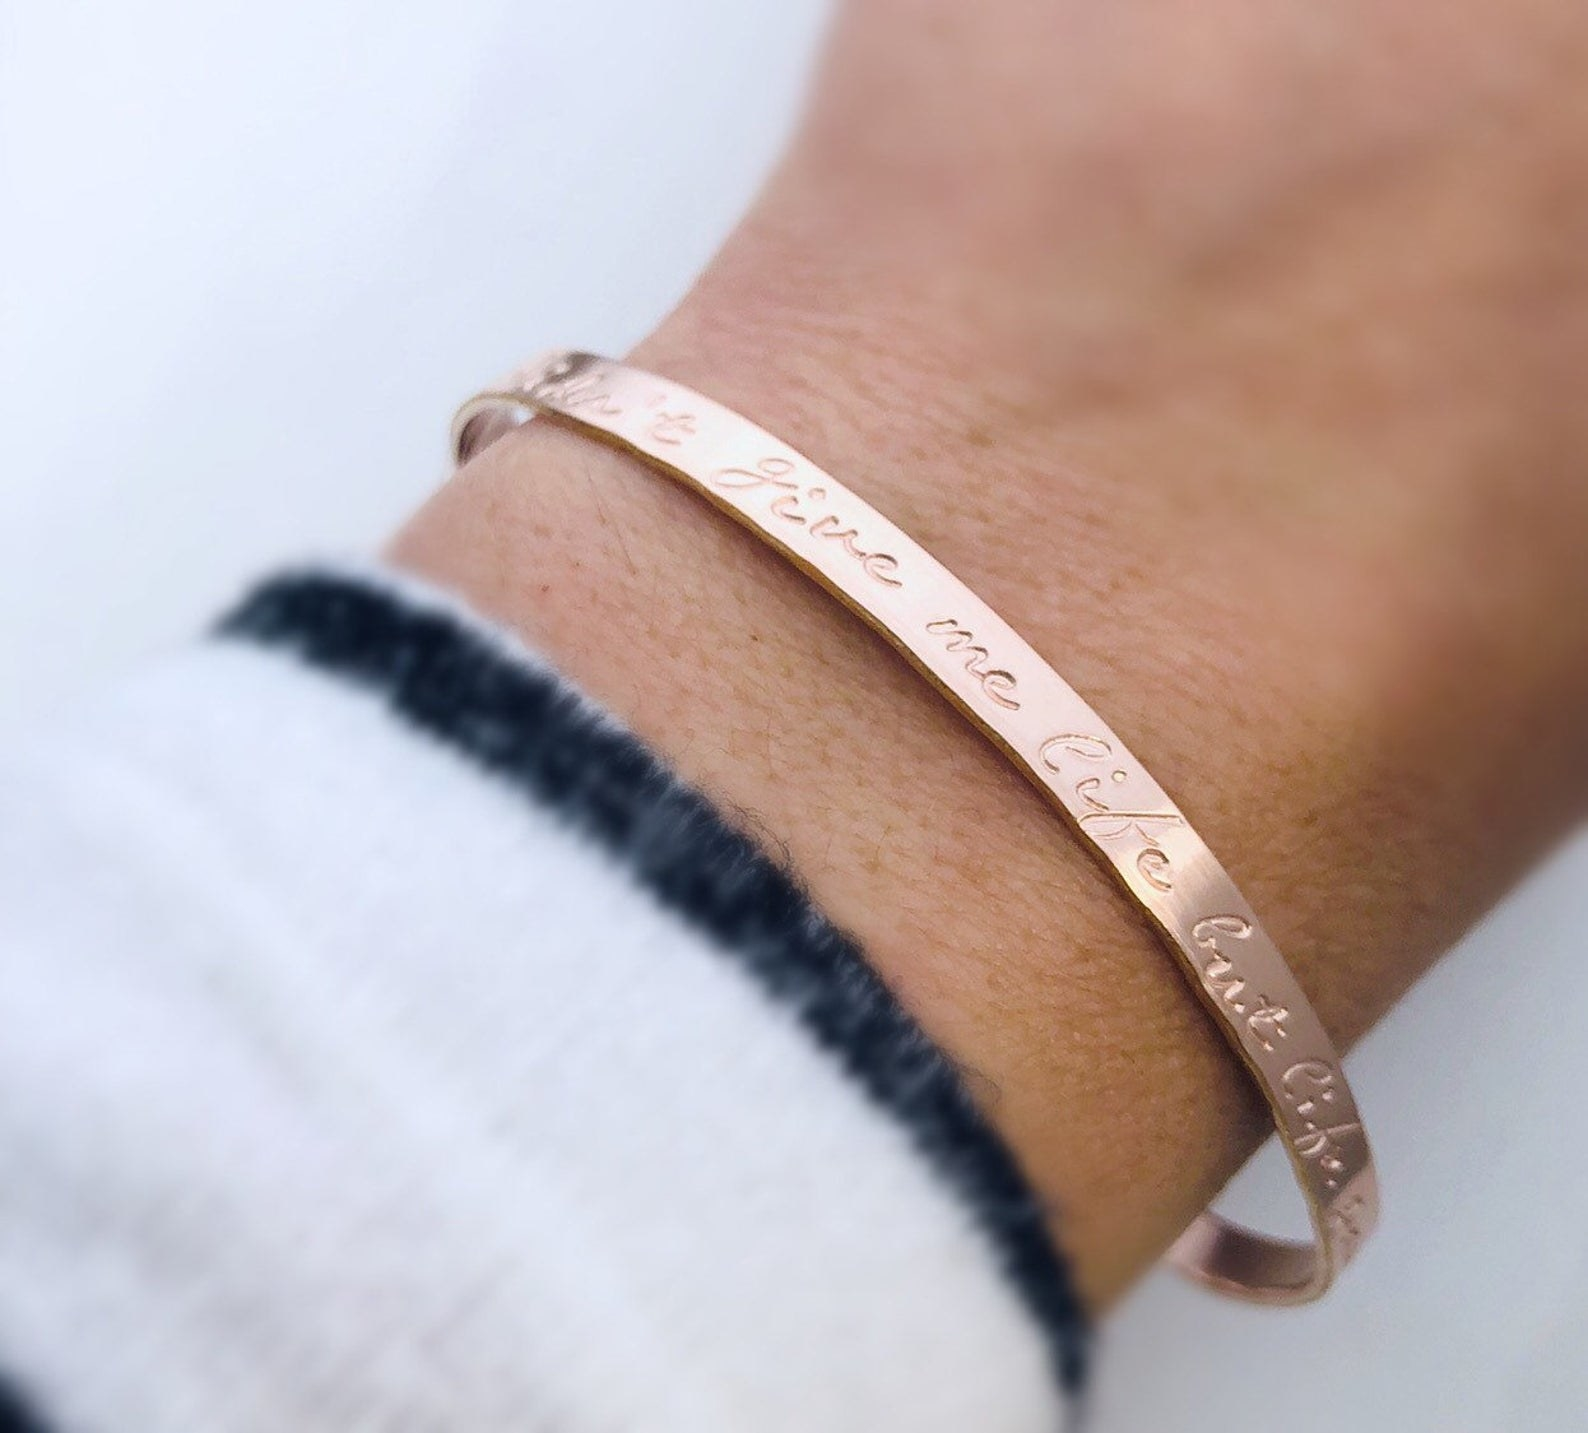 a model wearing an engraved cuff bracelet that says You may not have given me life, but life gave me you